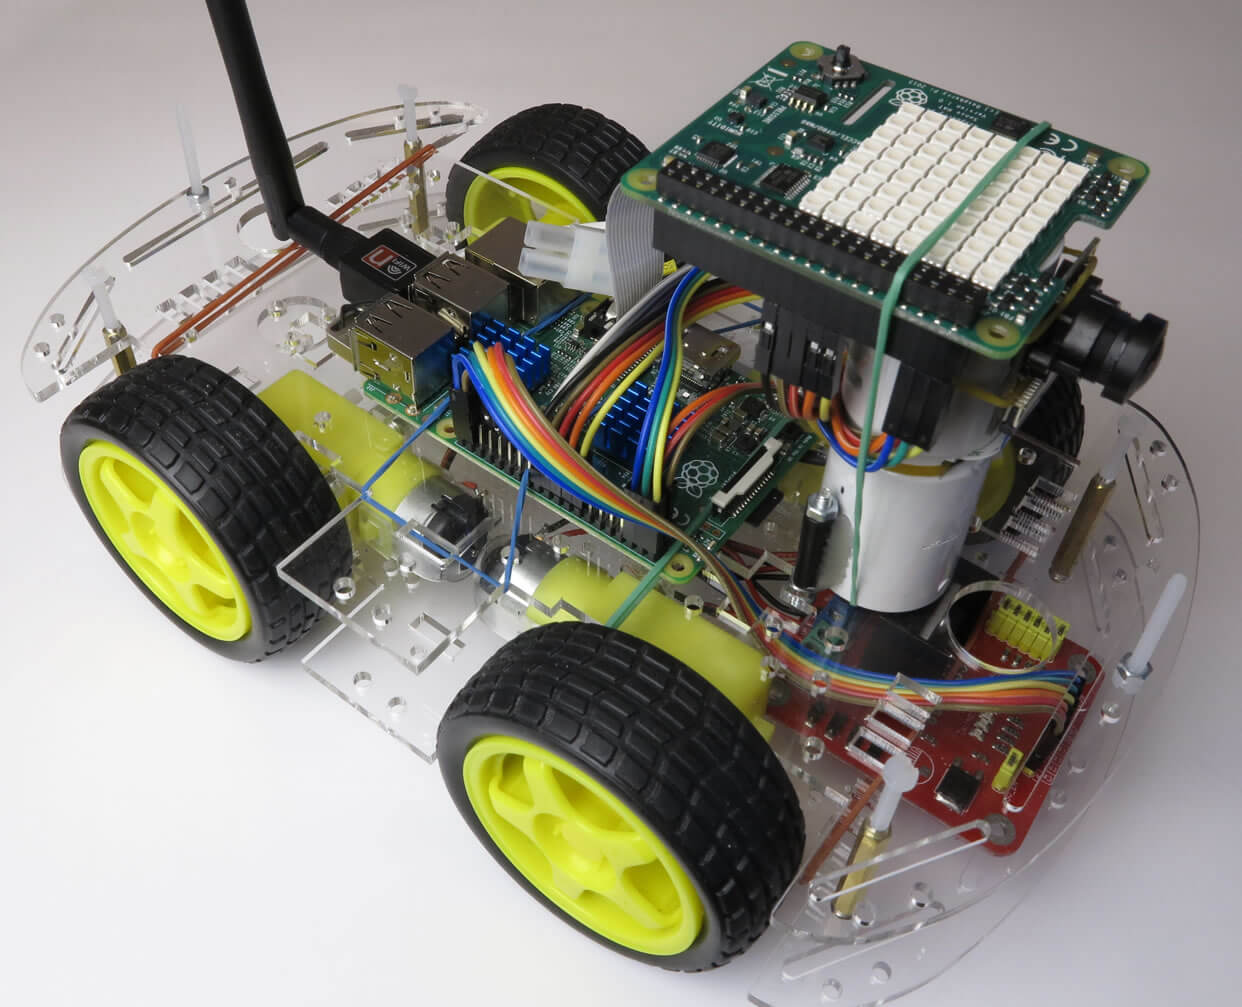 Build your own robots with this Raspberry Pi 3 board and training bundle